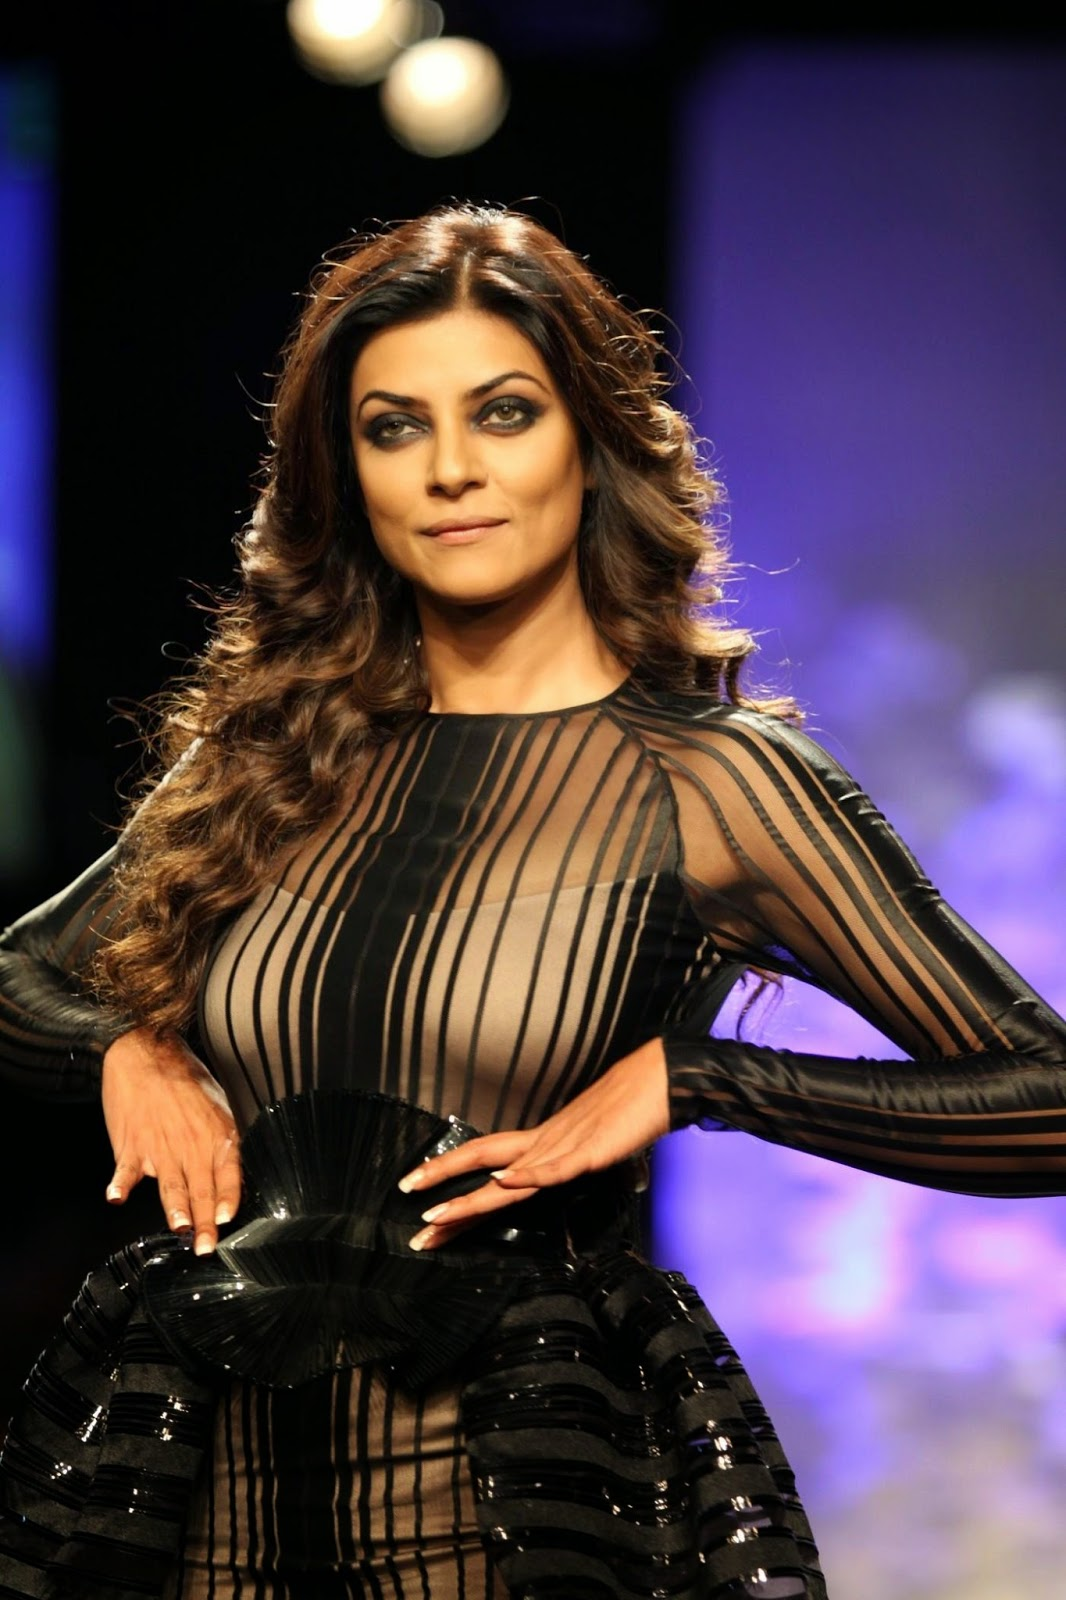 from Brooks image of nude sushmita sen